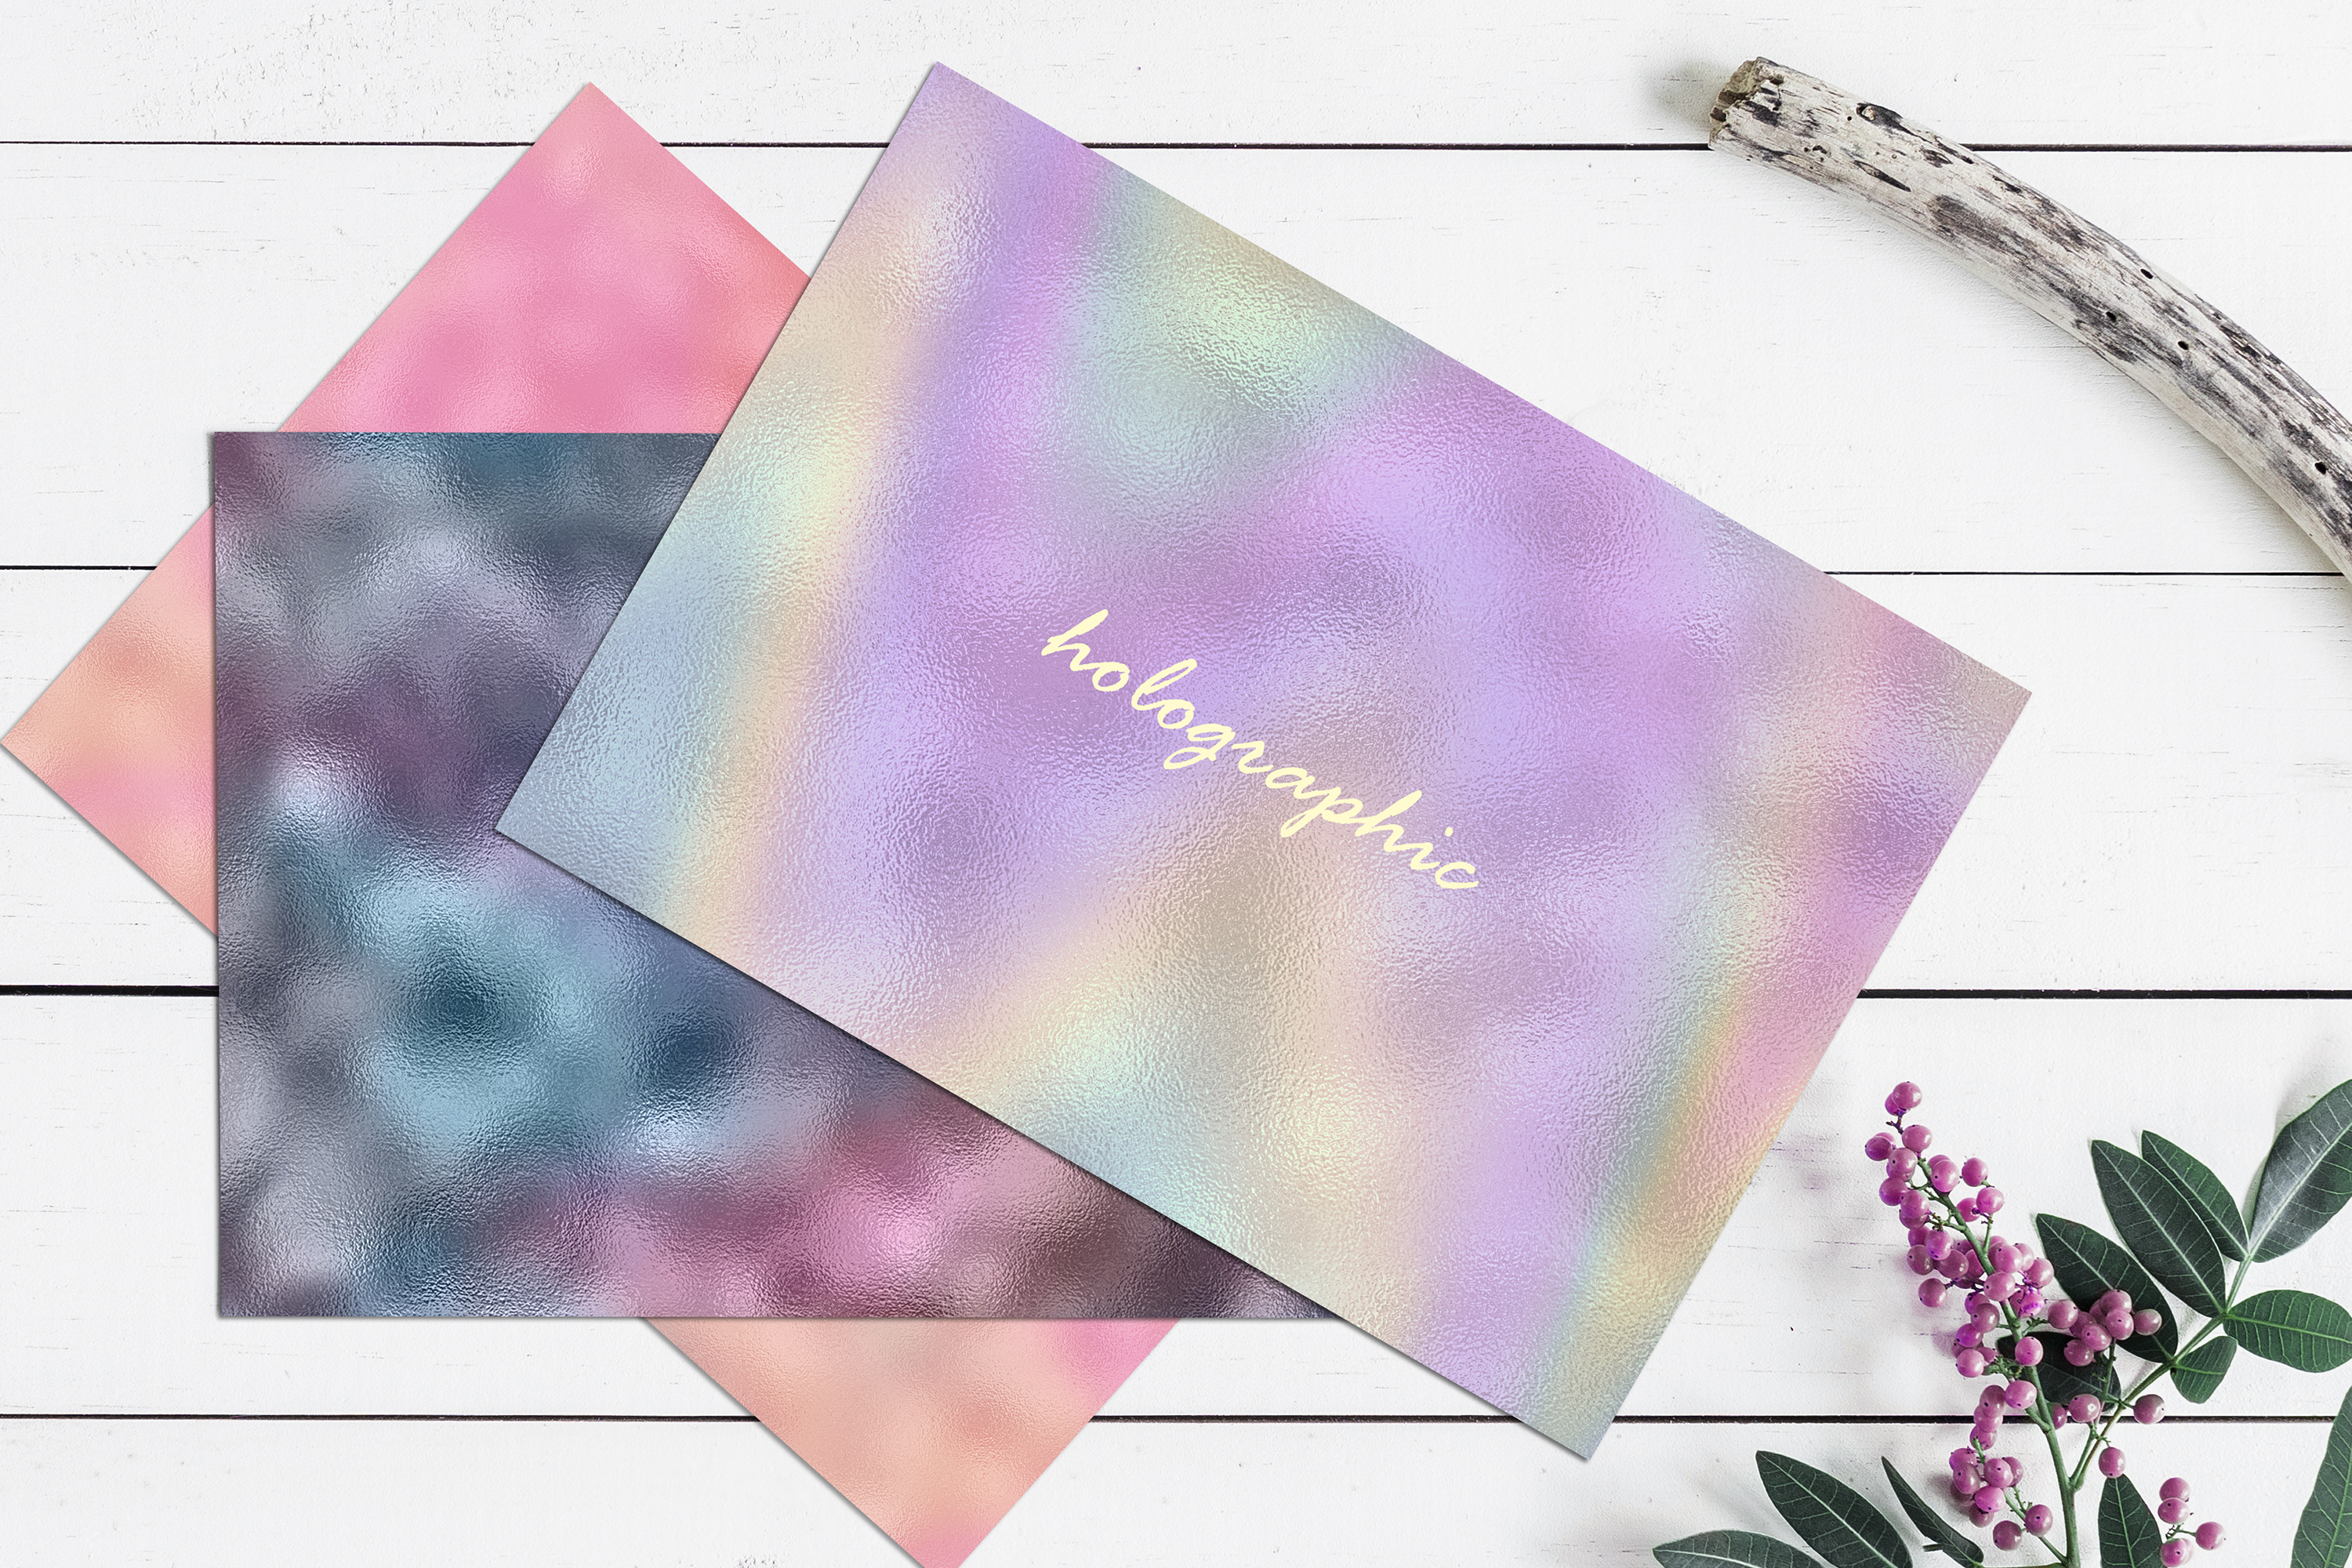 10 Iridescent Textures - Seamless Holographic Foil example image 3